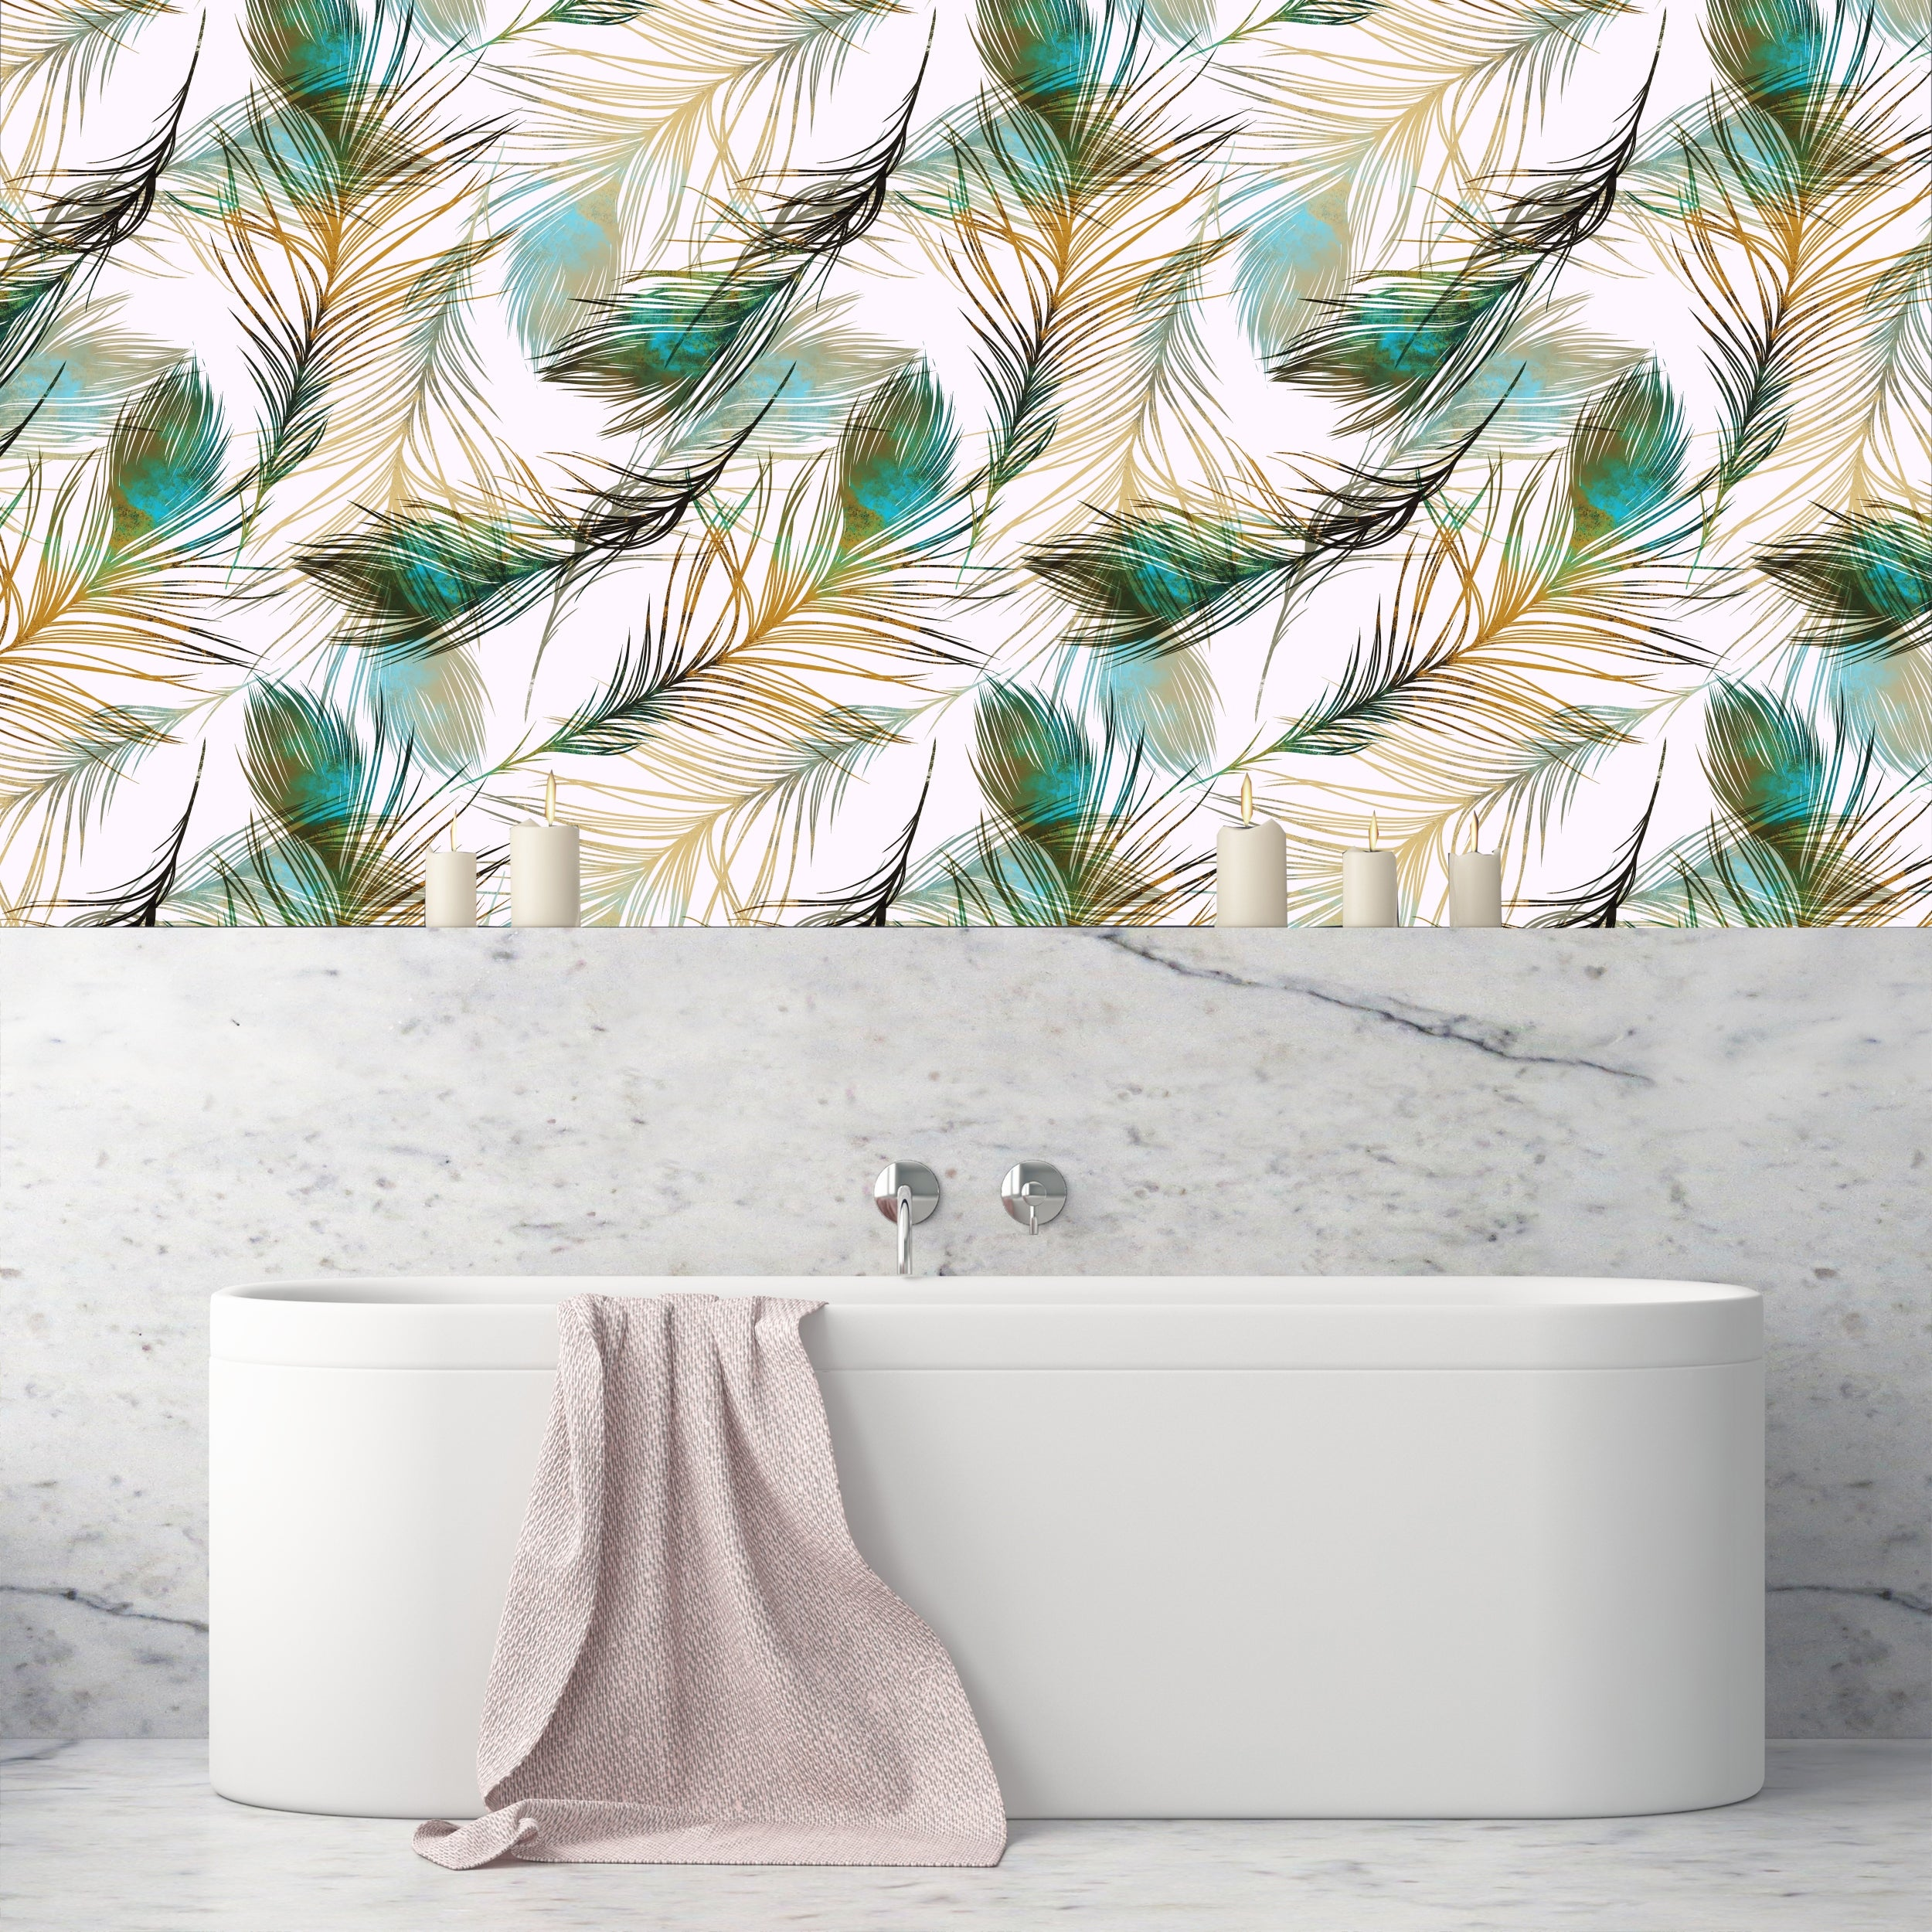 Shop Harius Peacock Feathers Removable Wallpaper 24 Inch X 10 Ft Overstock 31809408